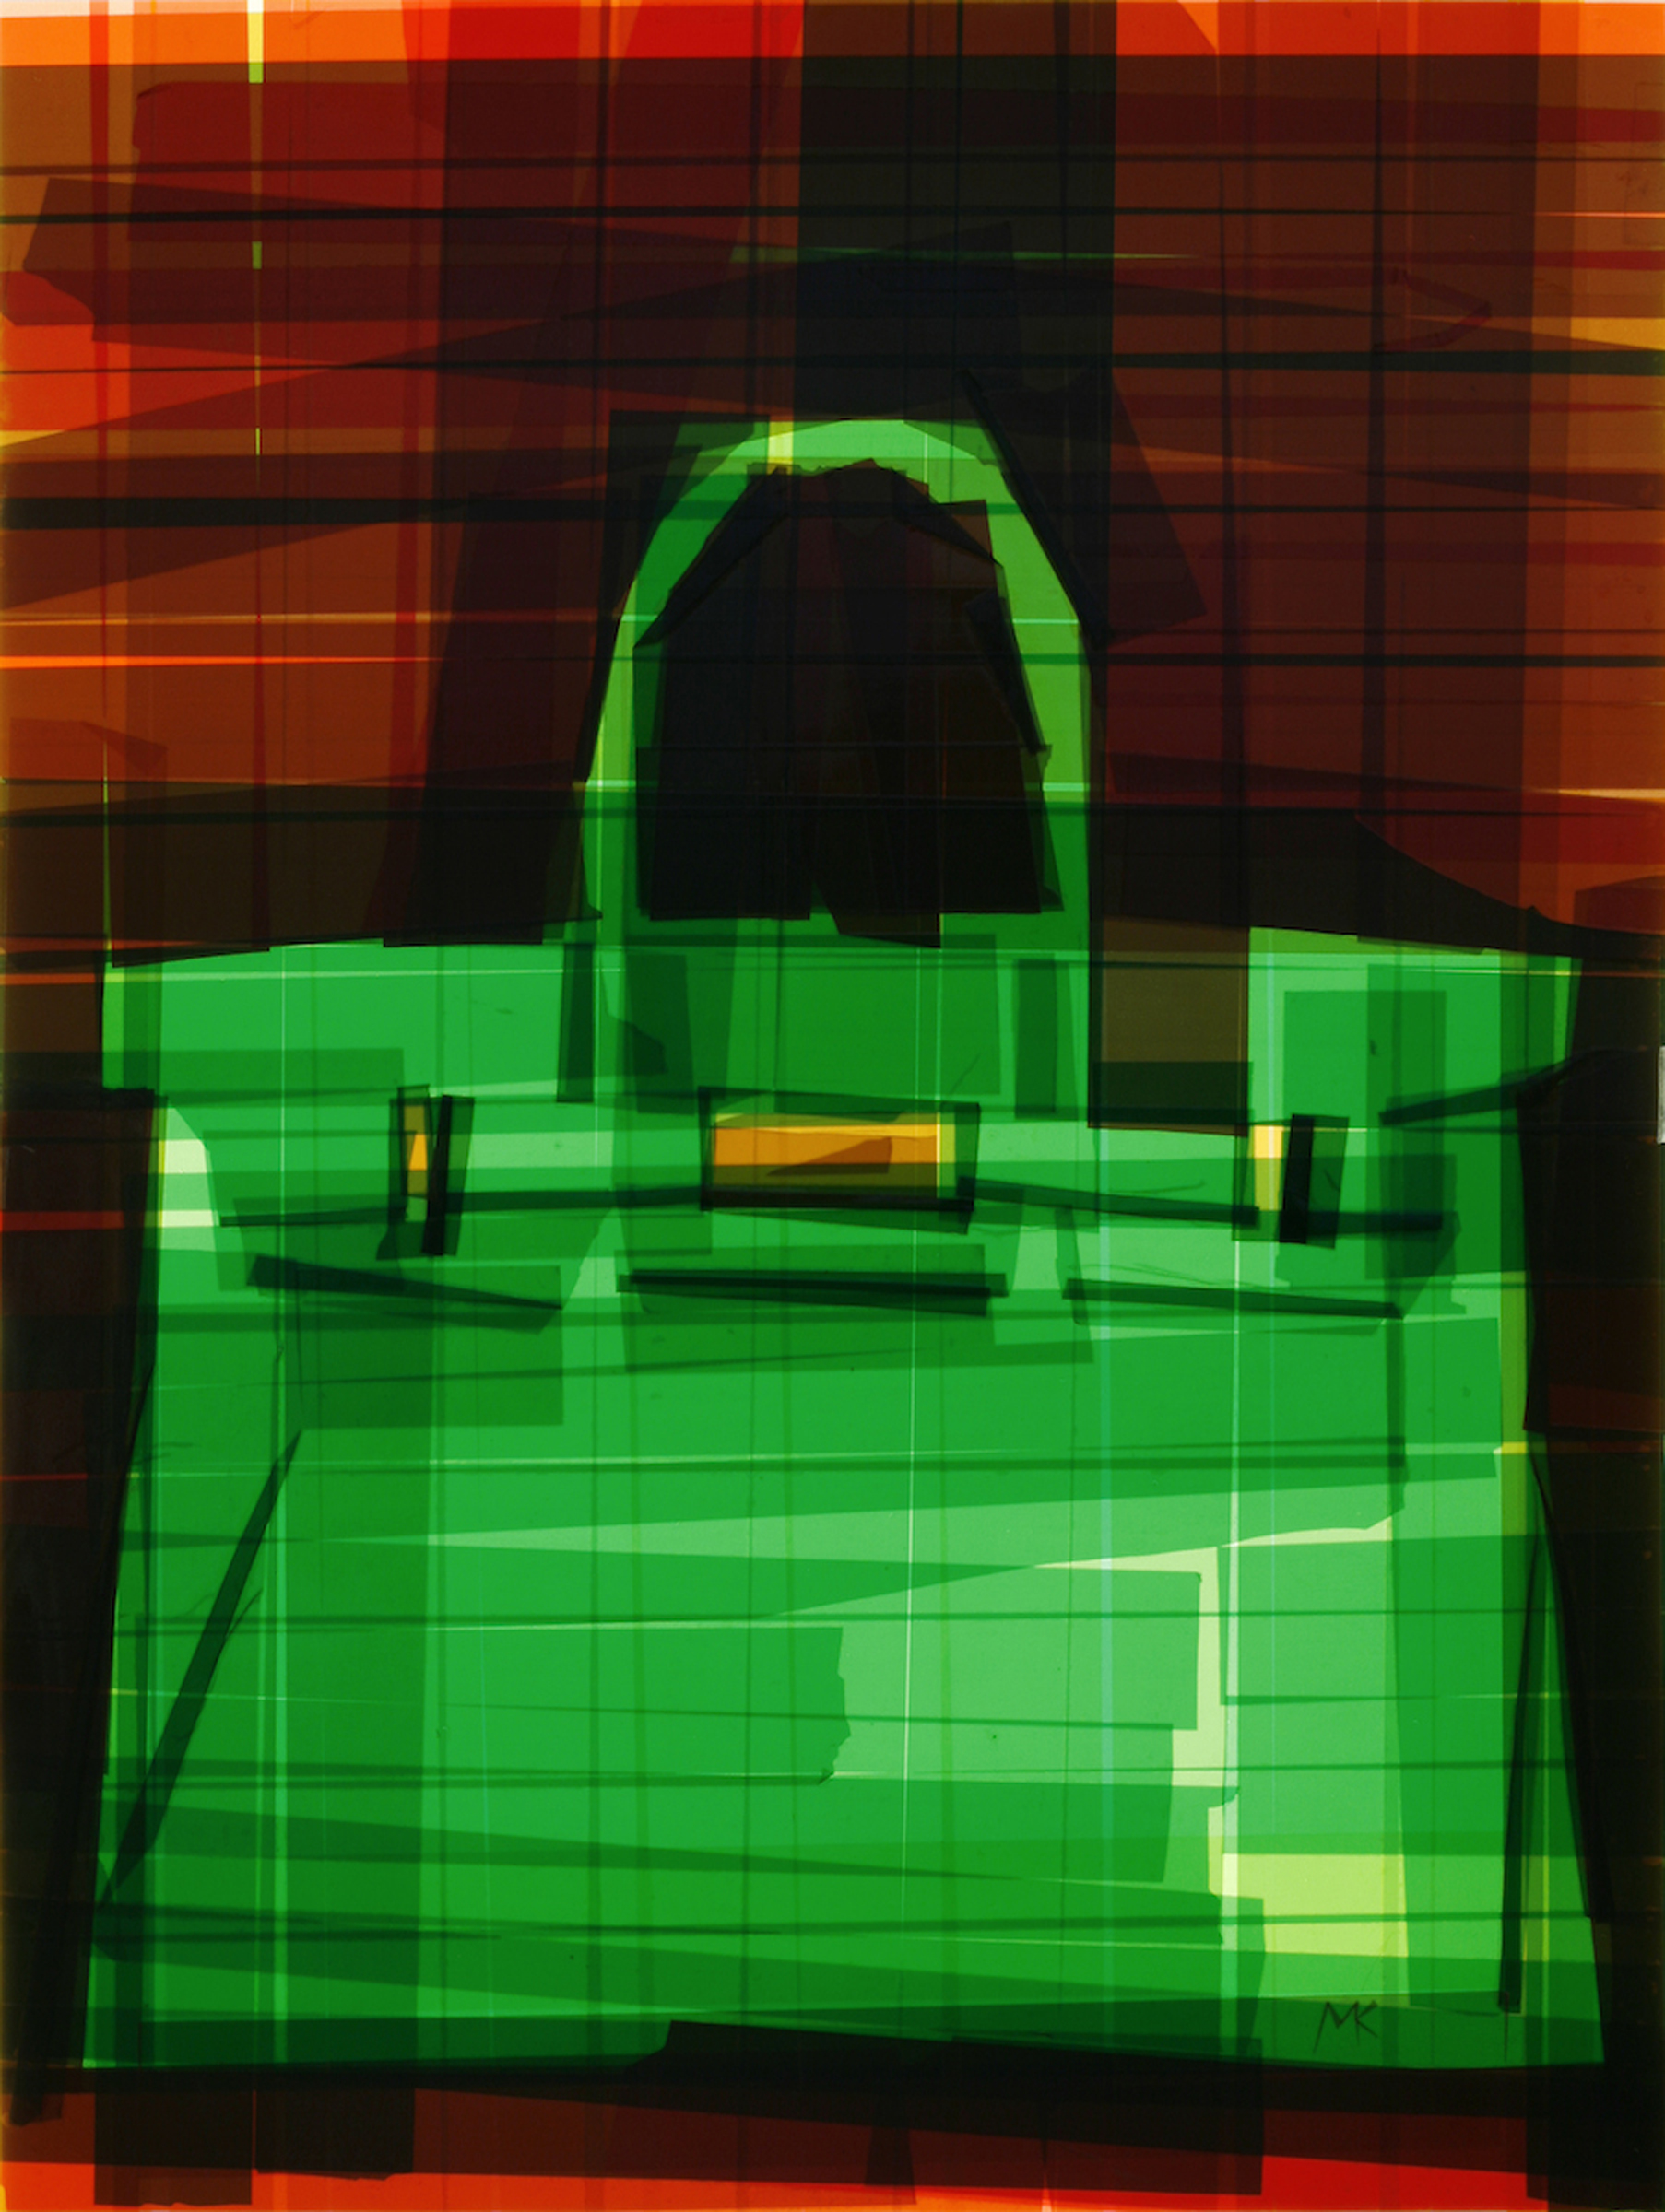 Birkin Bag Glimpse 6, 27 x 20.5 x 6 inches / 69 x 52 x 15.24 cm, packaging tape on acrylic panel with translucent resin light box, 2013